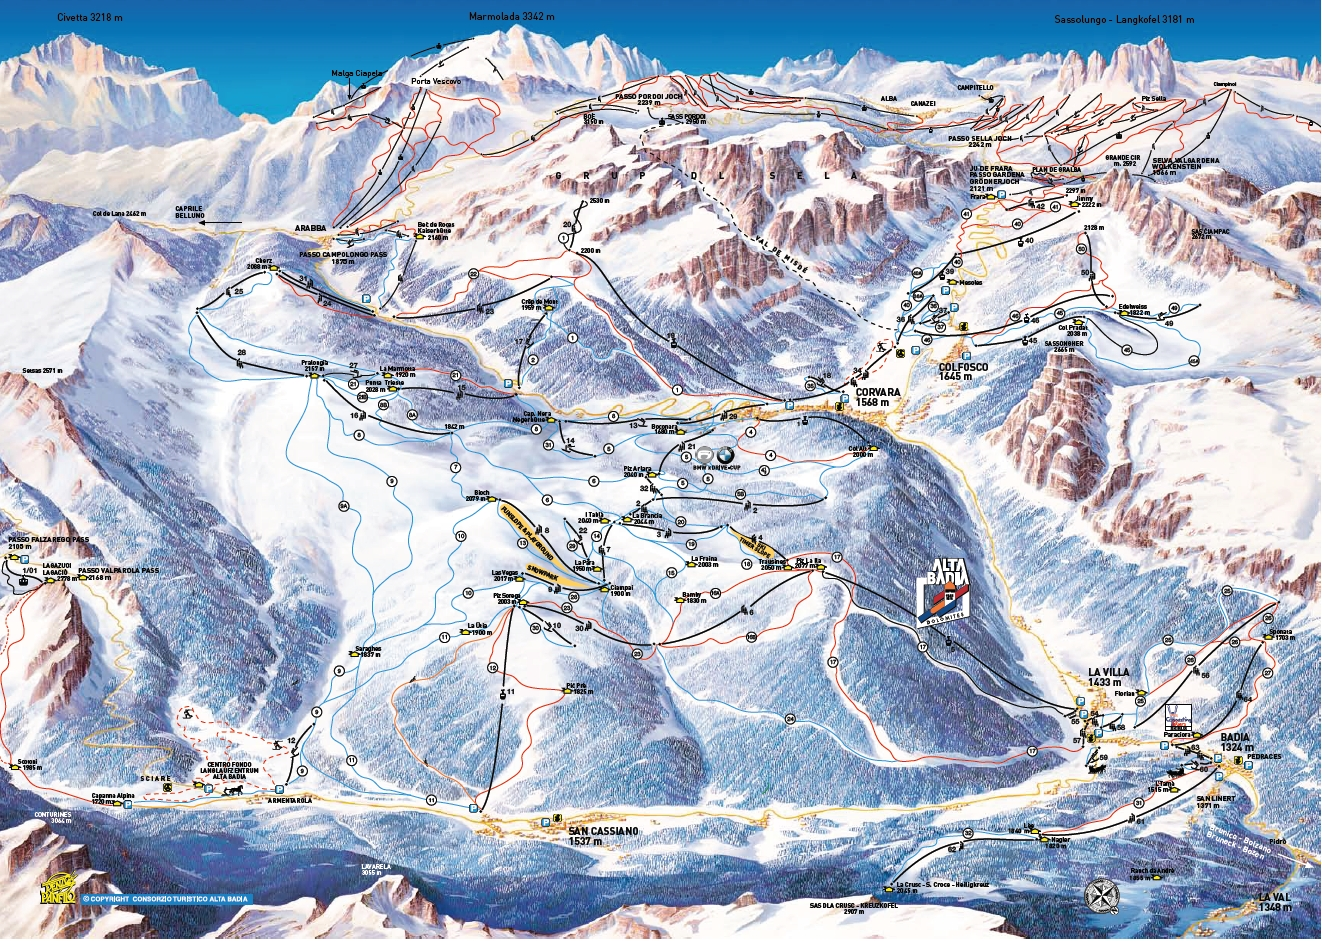 Map of La Villa / Stern pistes